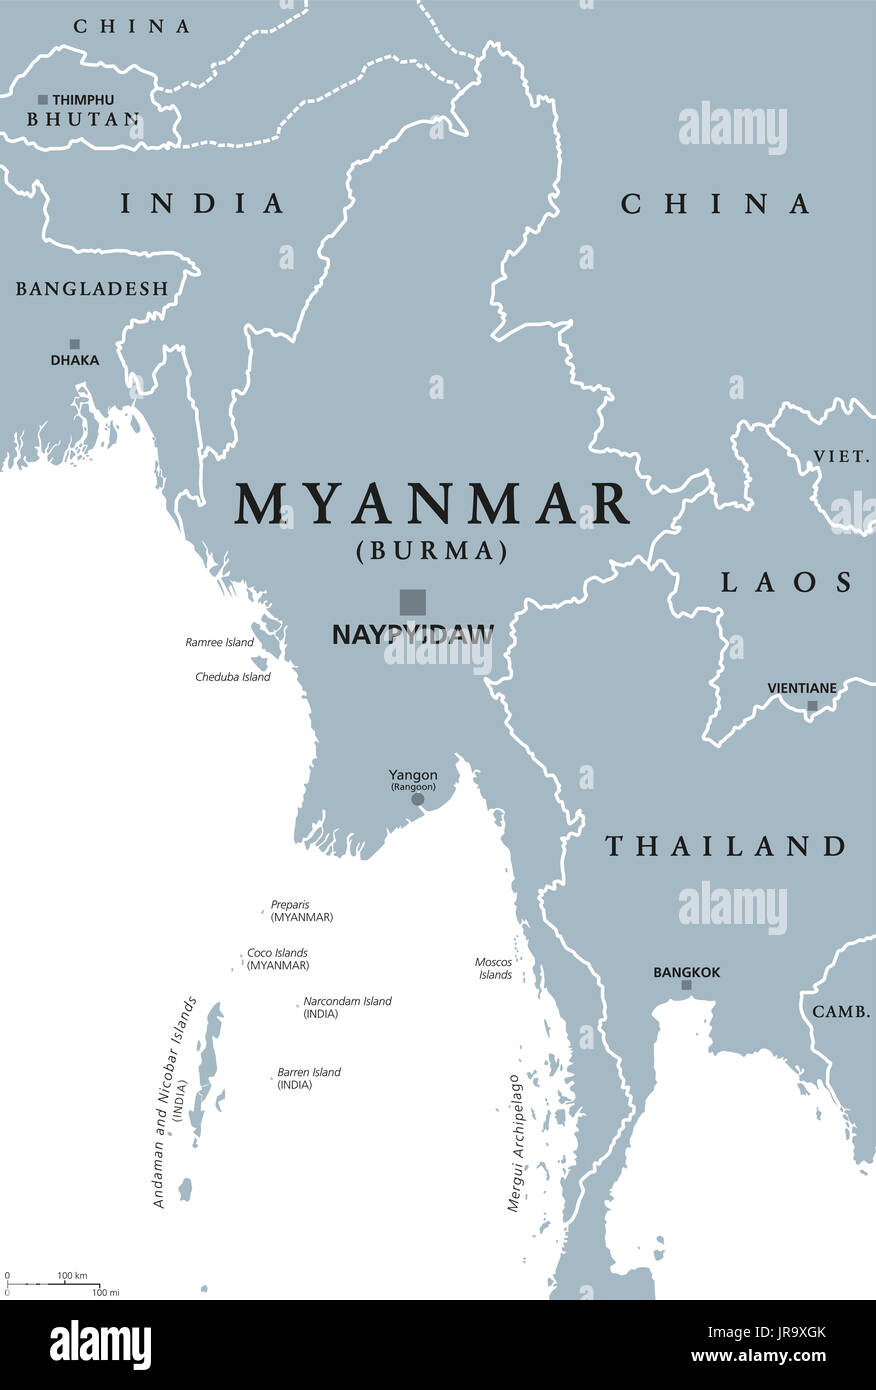 Map Southeast Asia Stock Photos & Map Southeast Asia Stock Images ...